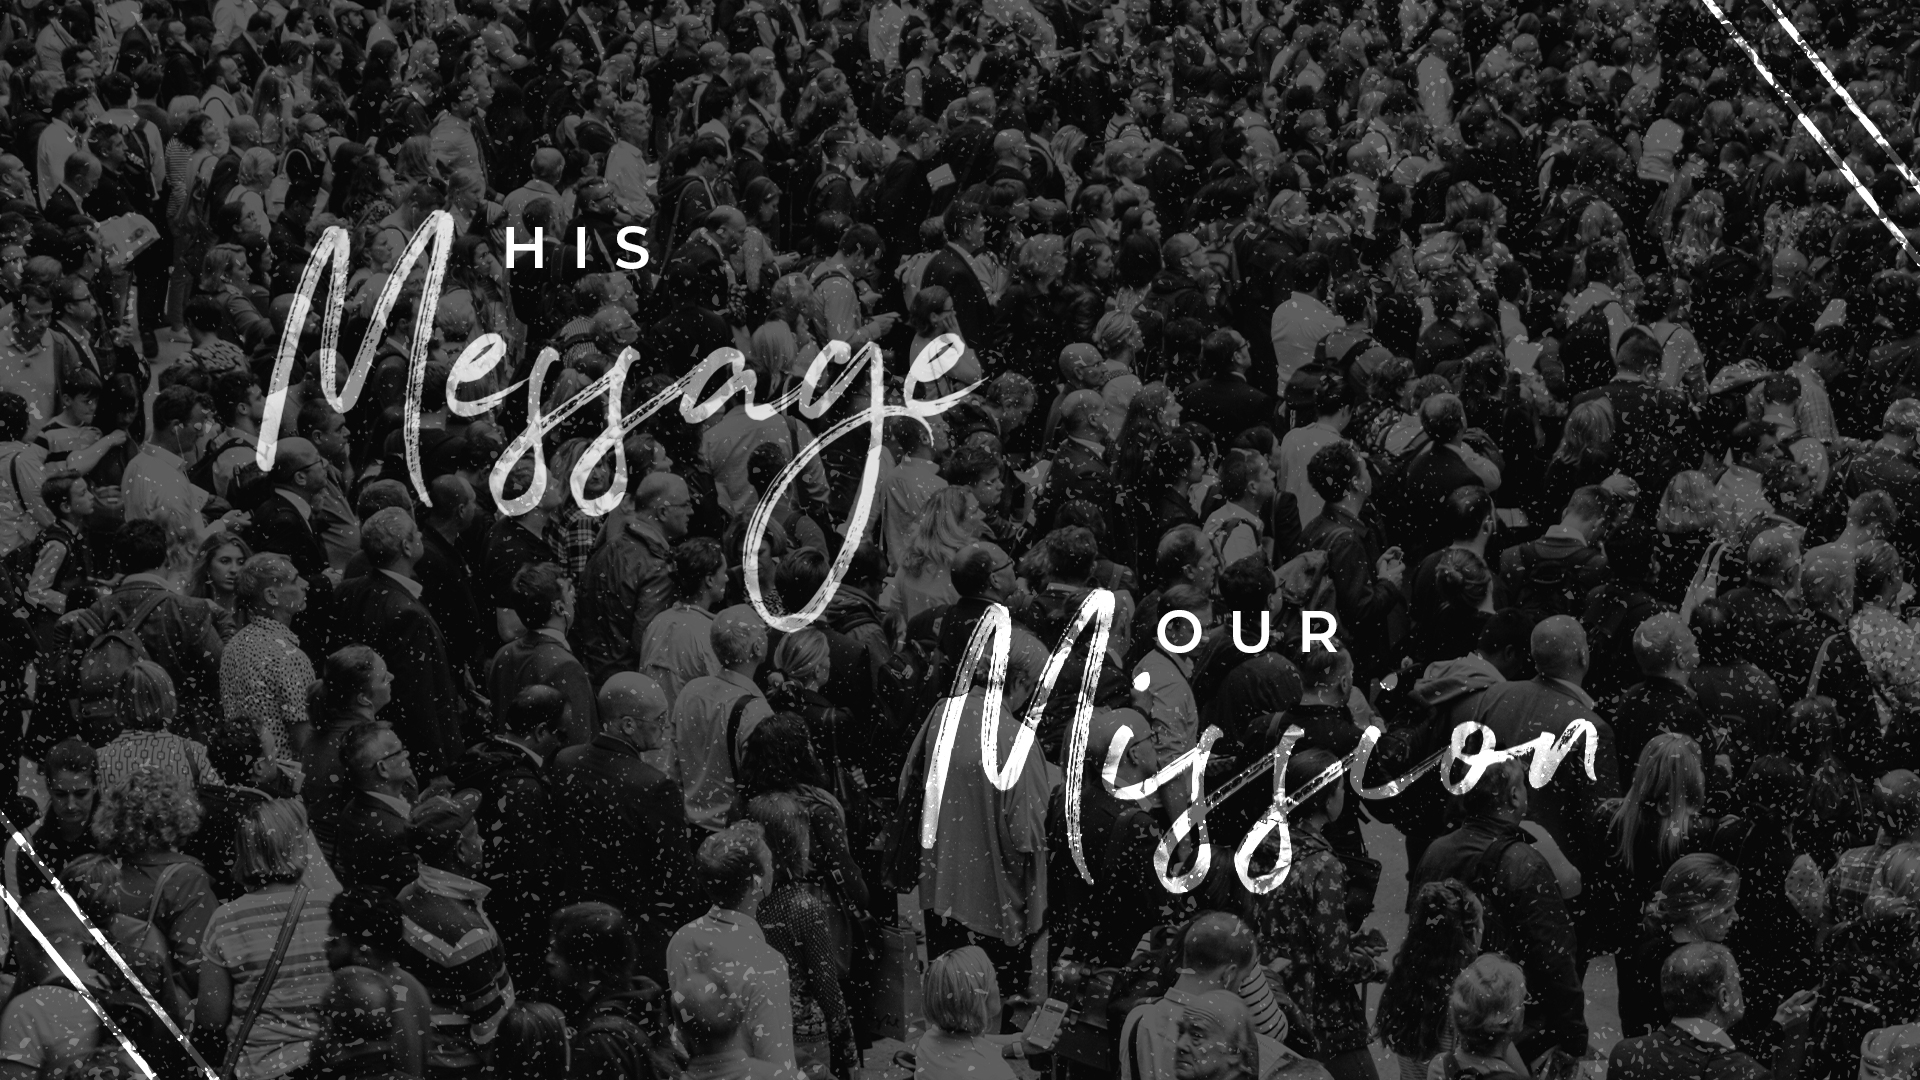 His Message, Our Mission - Banner of Congregation